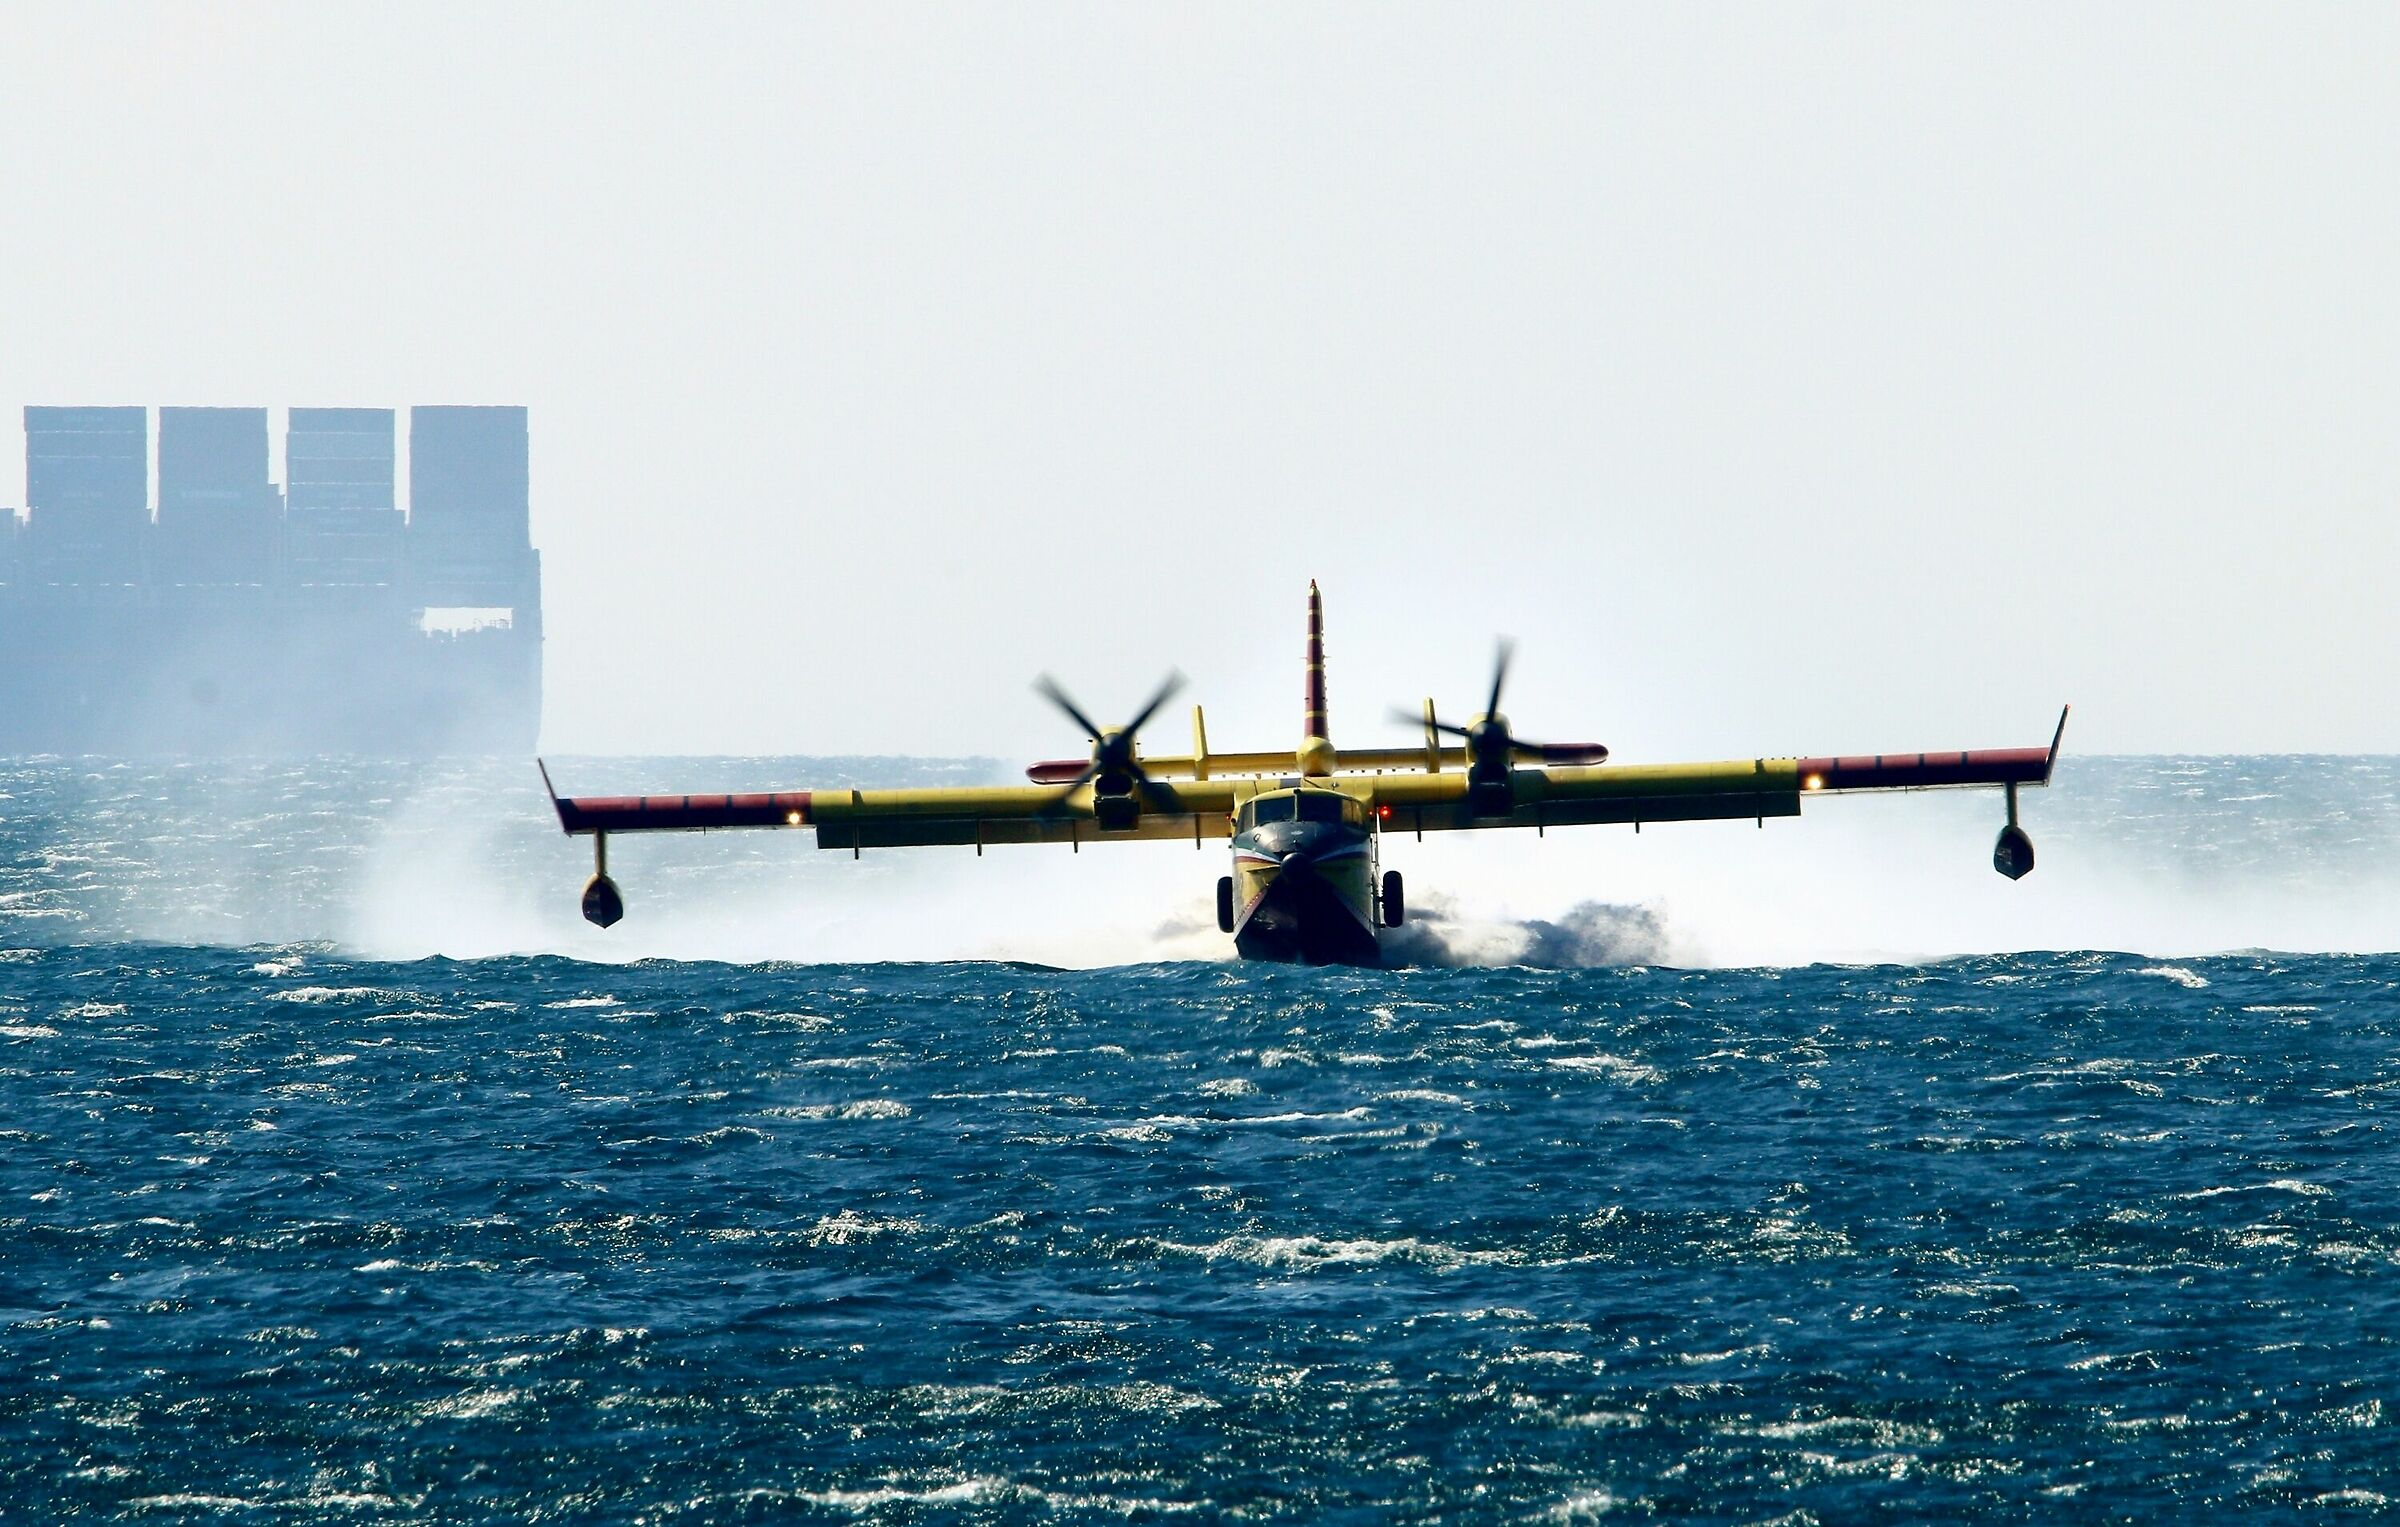 Canadair in action...